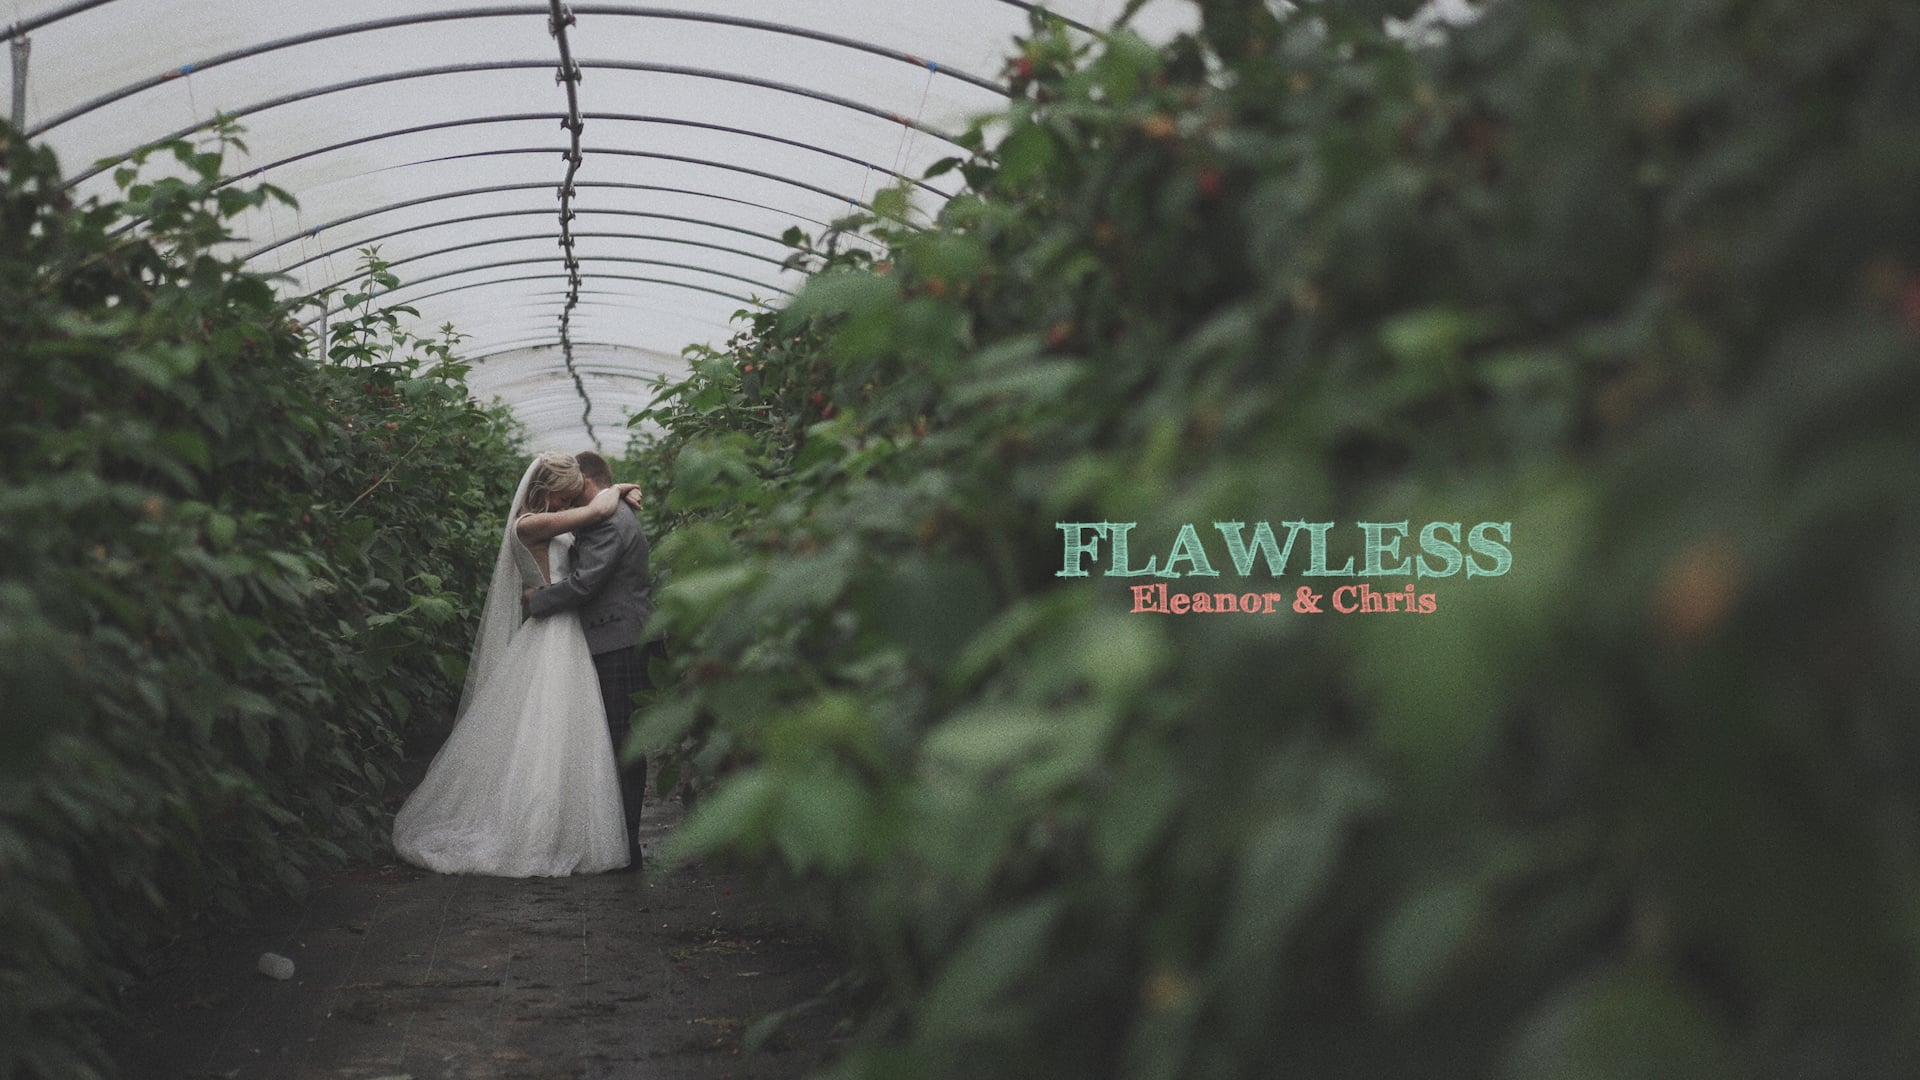 Flawless by Eleanor and Chris